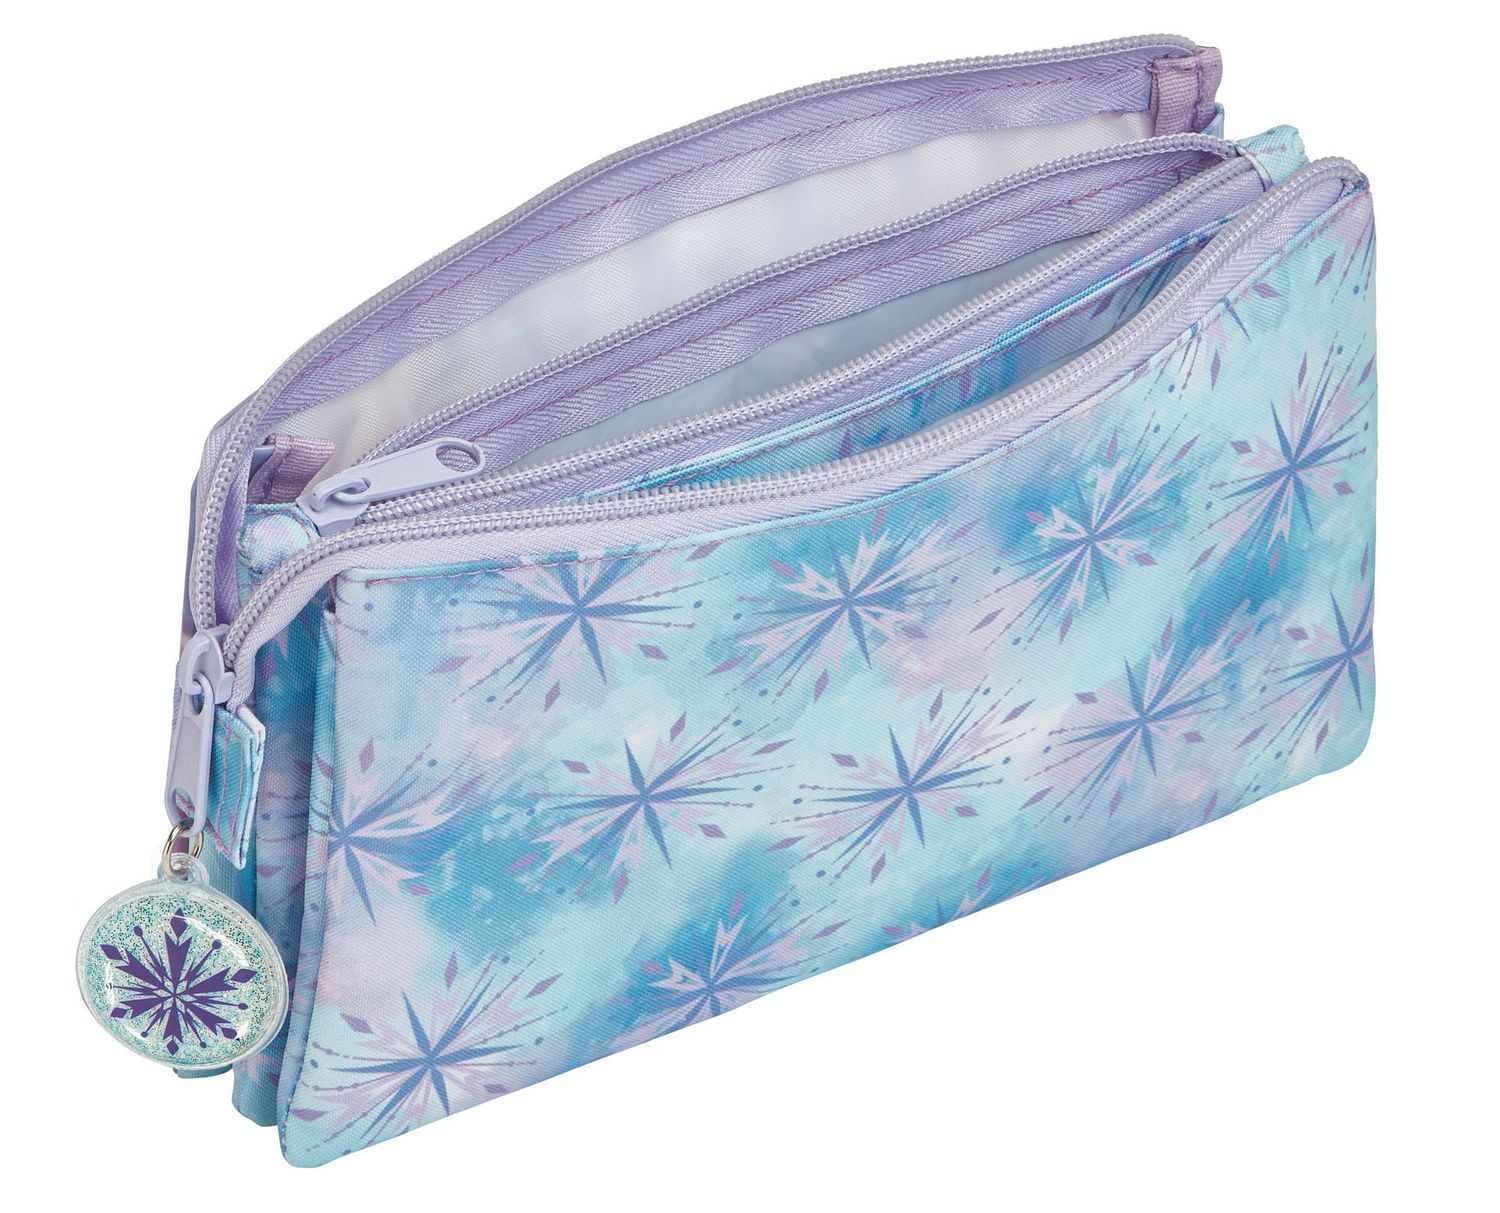 Disney Frozen 2 Triple Pencil Case – image 2